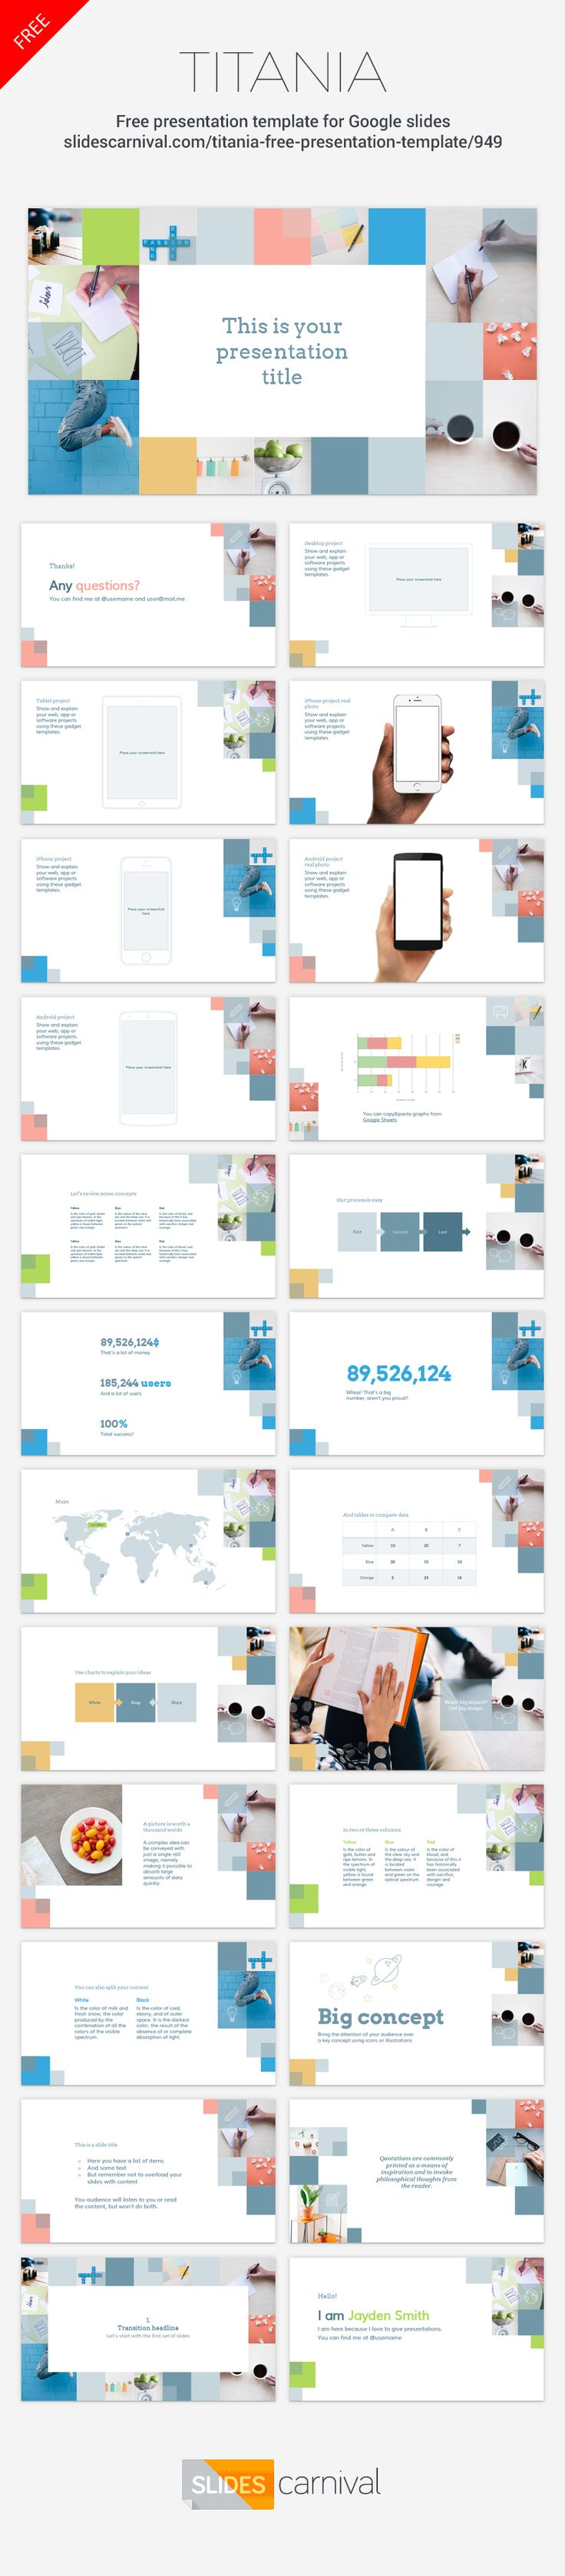 any interesting topic for presentation best ideas about  best ideas about presentation topics interesting positive colorful and professional this presentation template suits a great